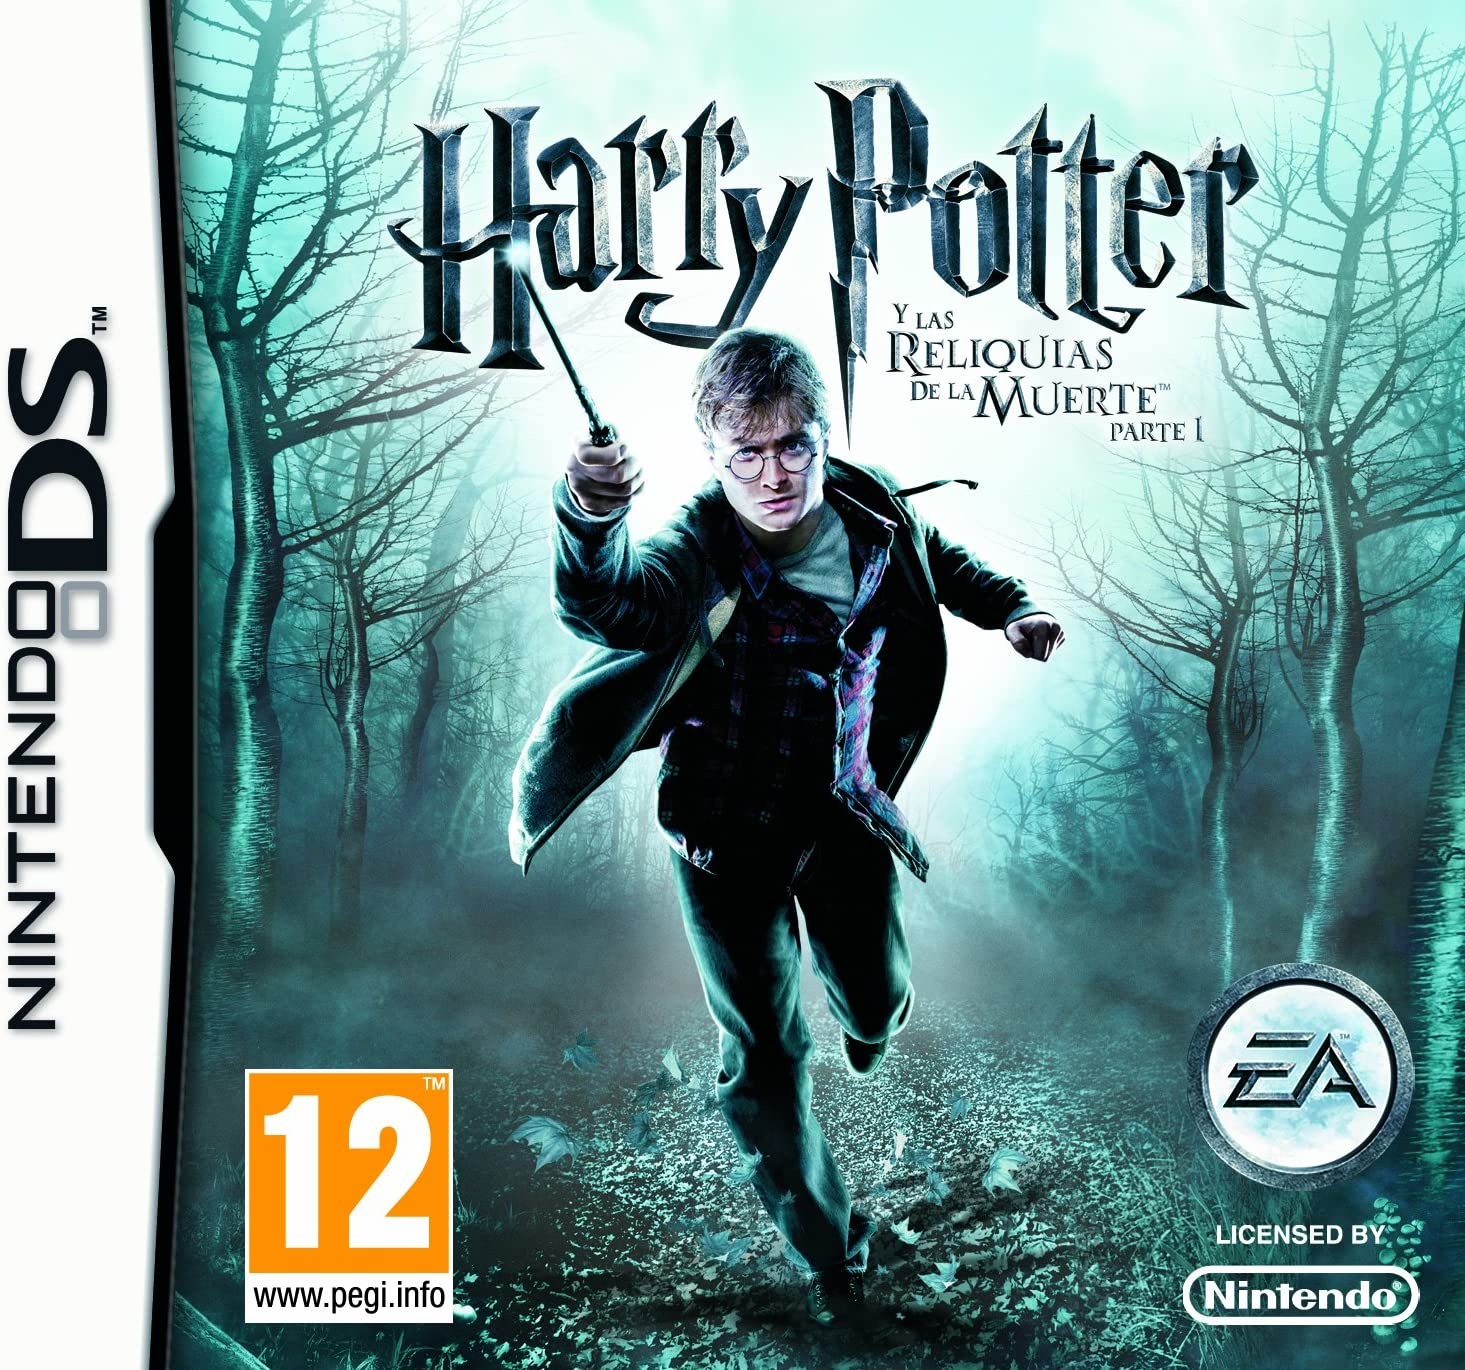 Harry Potter And The Deathly Hallows Part 1 Dual Screen: Amazon.es ...